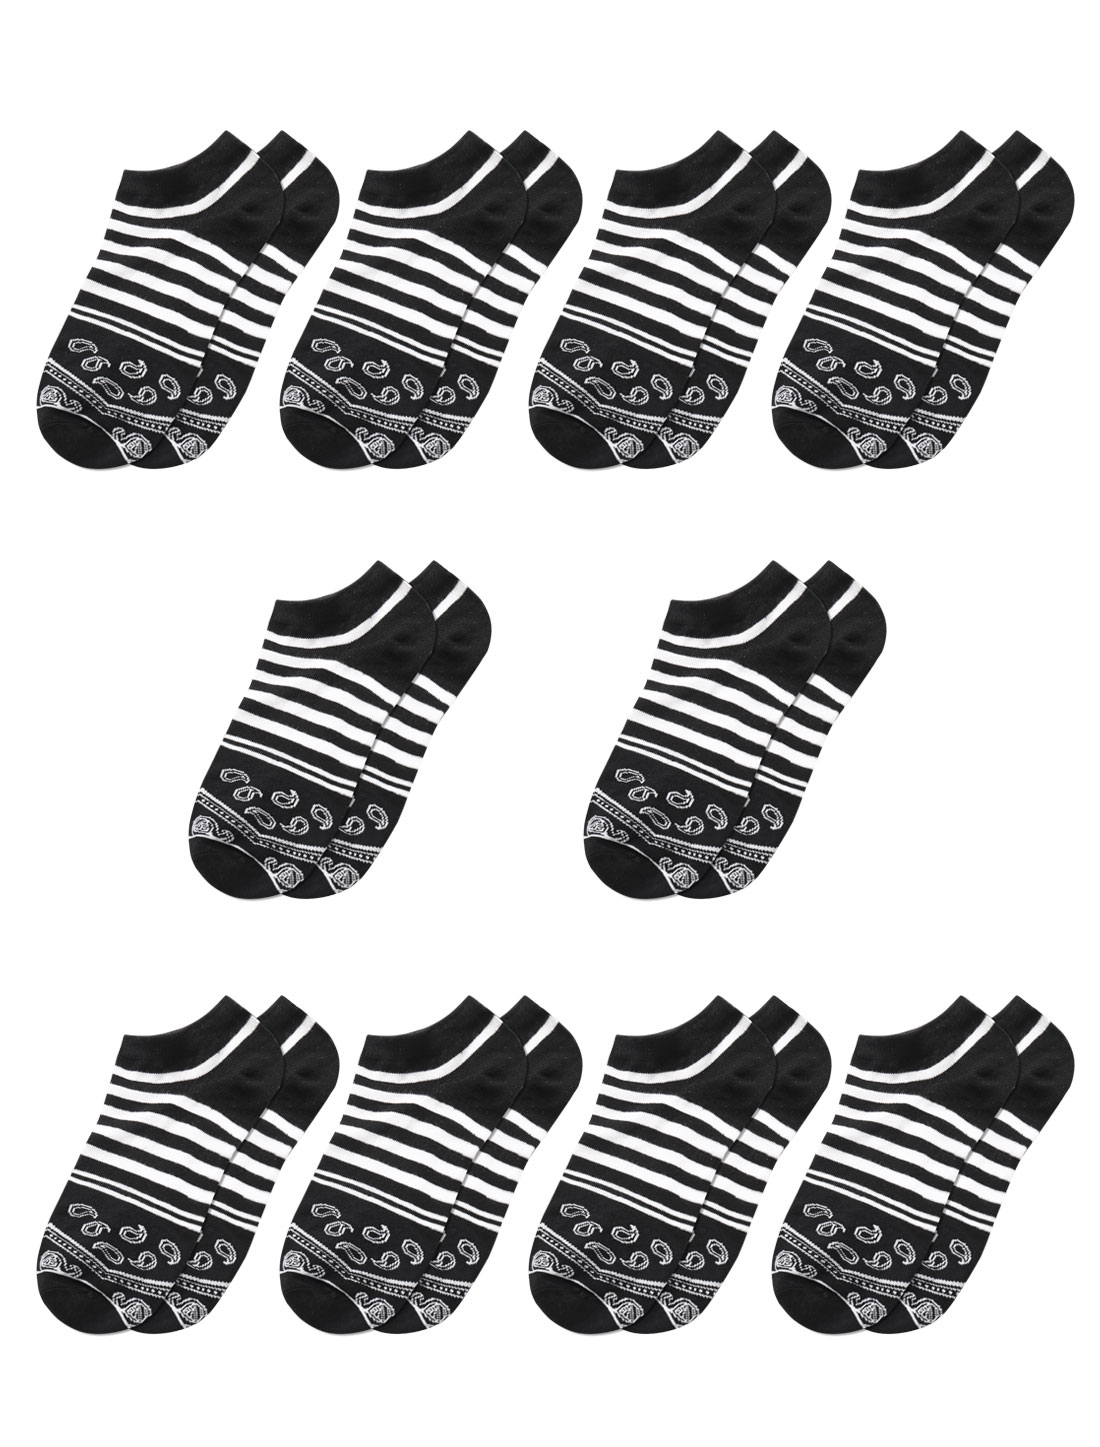 Men Stripes Paisleys Pattern Low Cut Short Socks 10 Pairs Black M